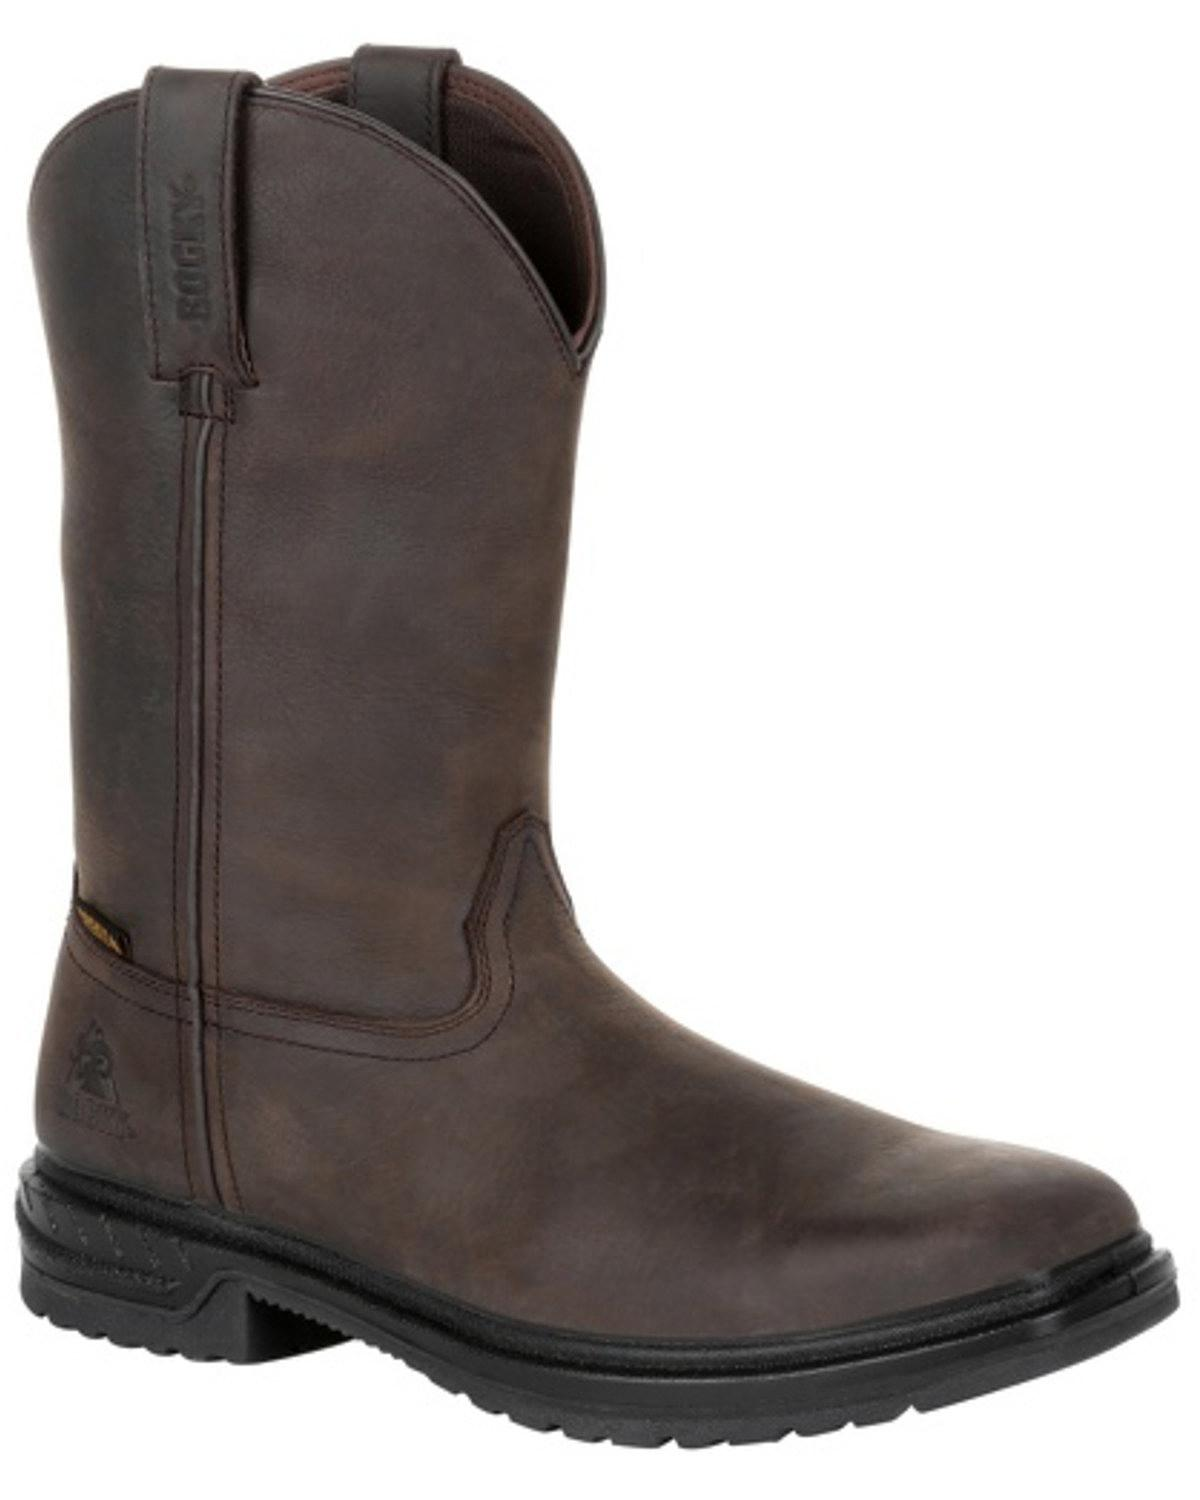 Rocky para hombre Worksmart Impermeable Bota De Trabajo occidental-Composite Toe-RKW0276